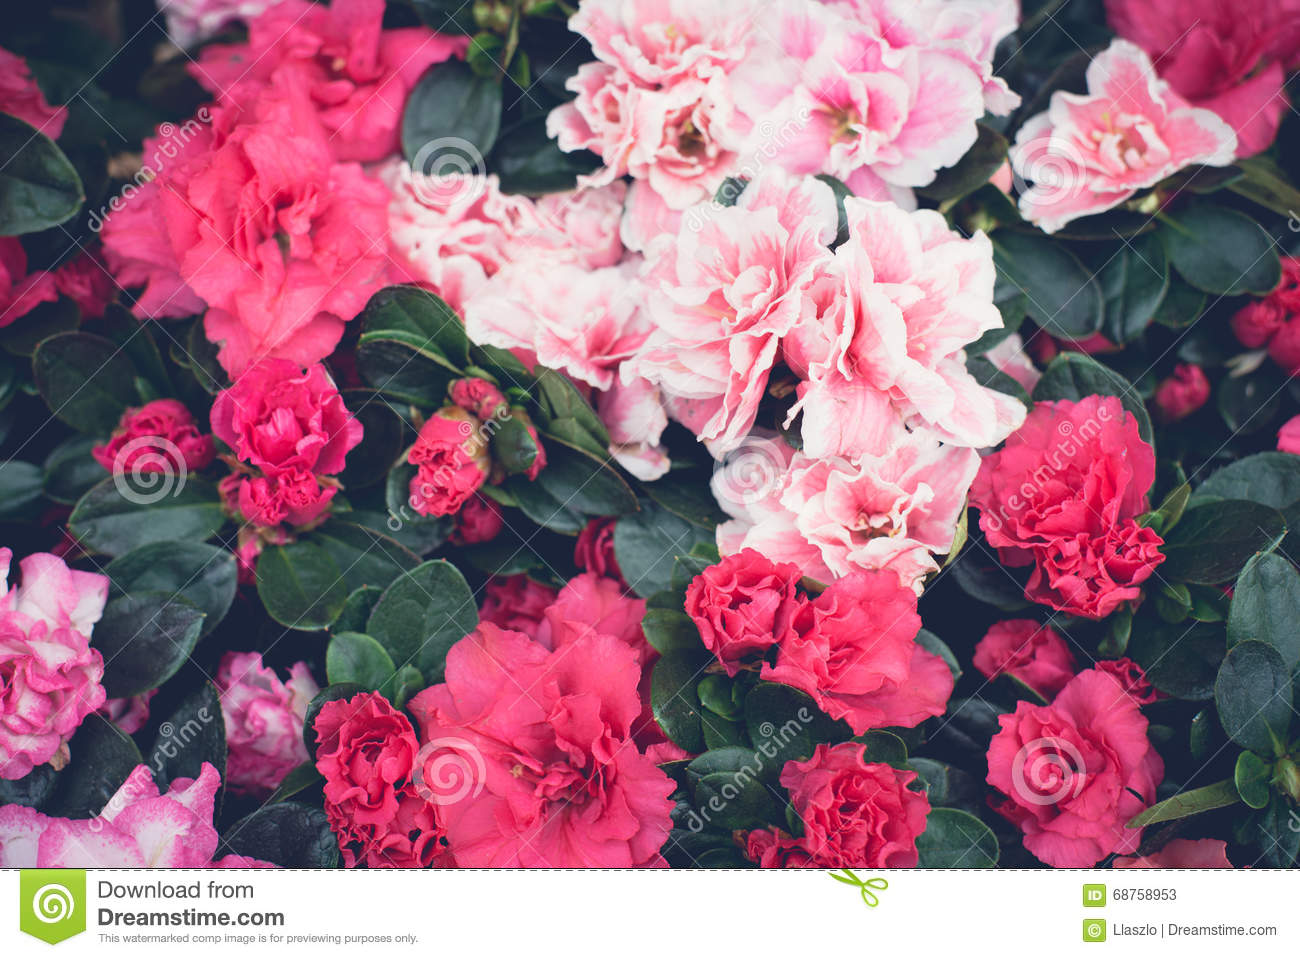 Pink floral wallpaper stock image image of floral close 68758953 mixed flowers dark and light pink floral pattern background or wallpaper close up image of fresh flowers mightylinksfo